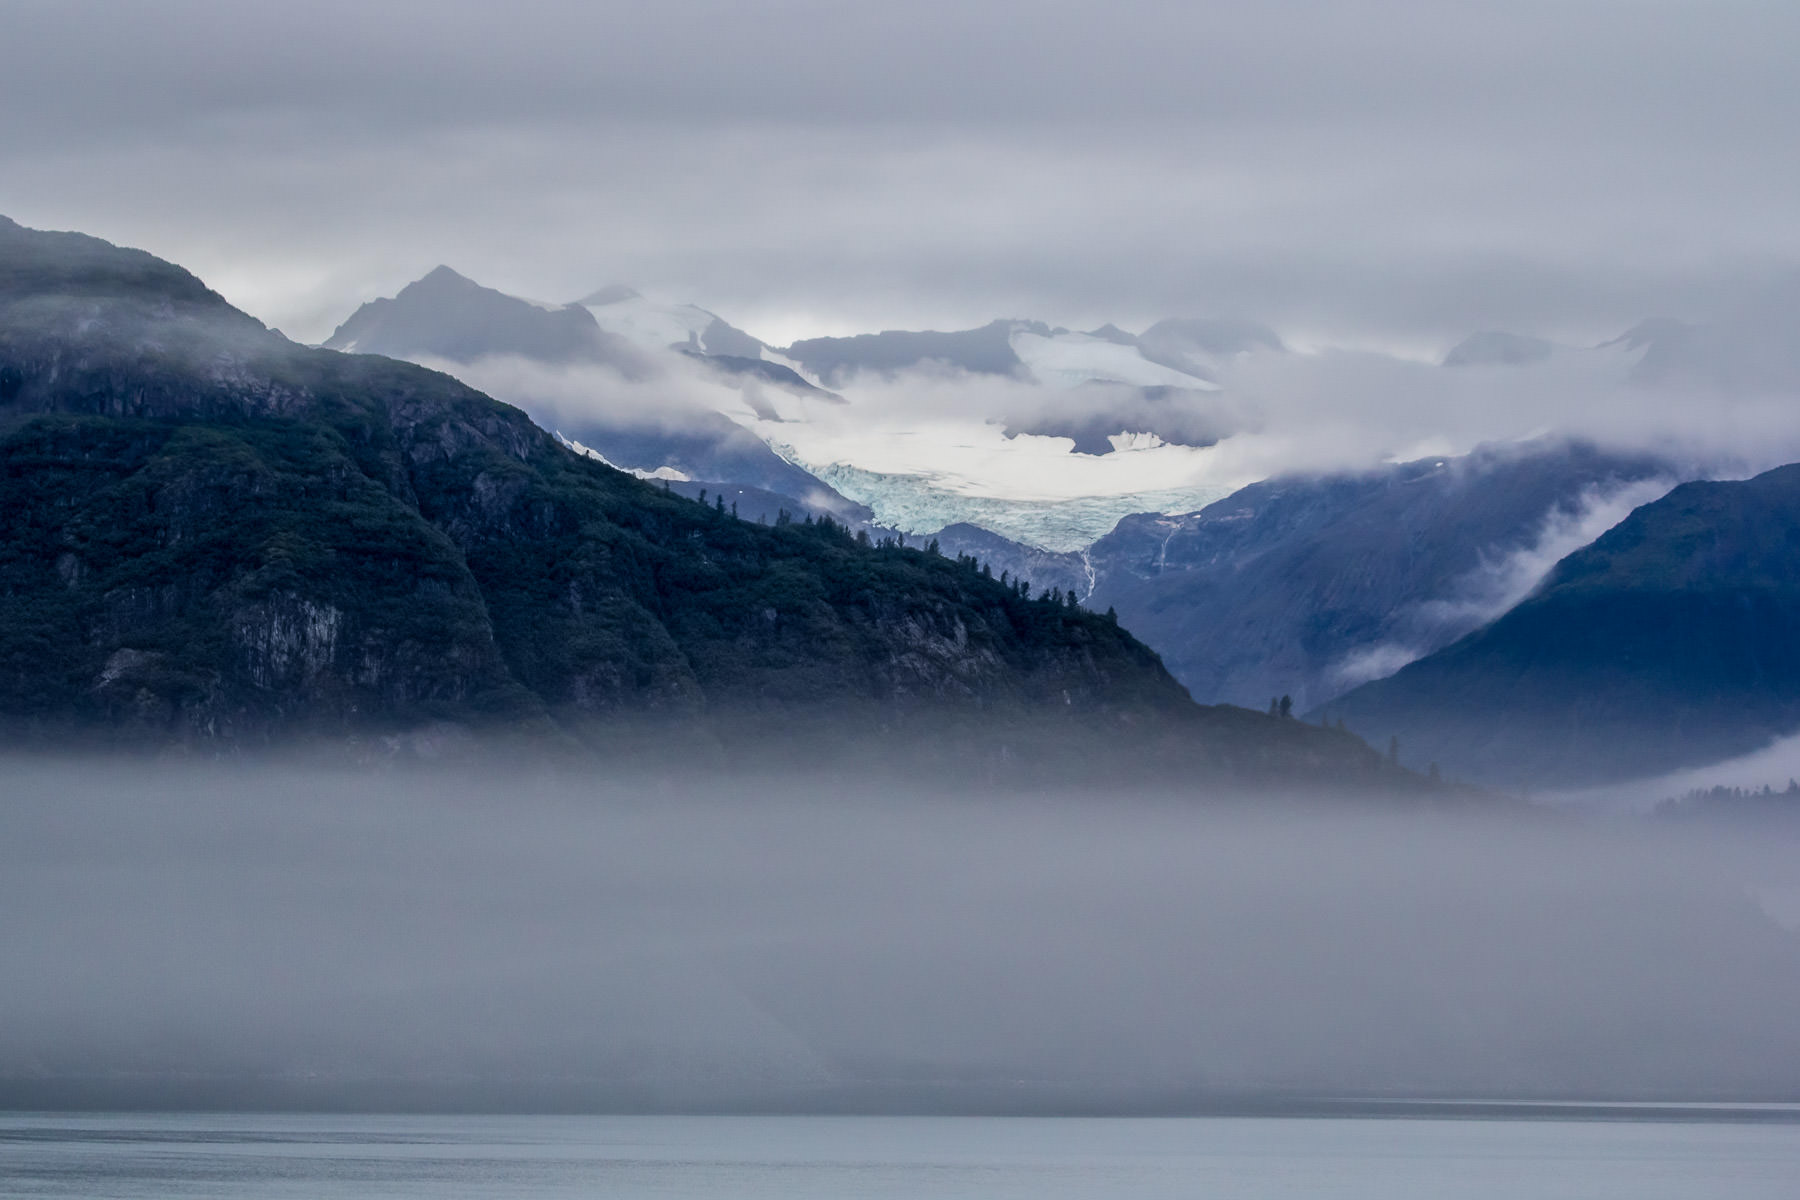 Fog envelops the rugged, mountainous shoreline of Alaska's Glacier Bay.